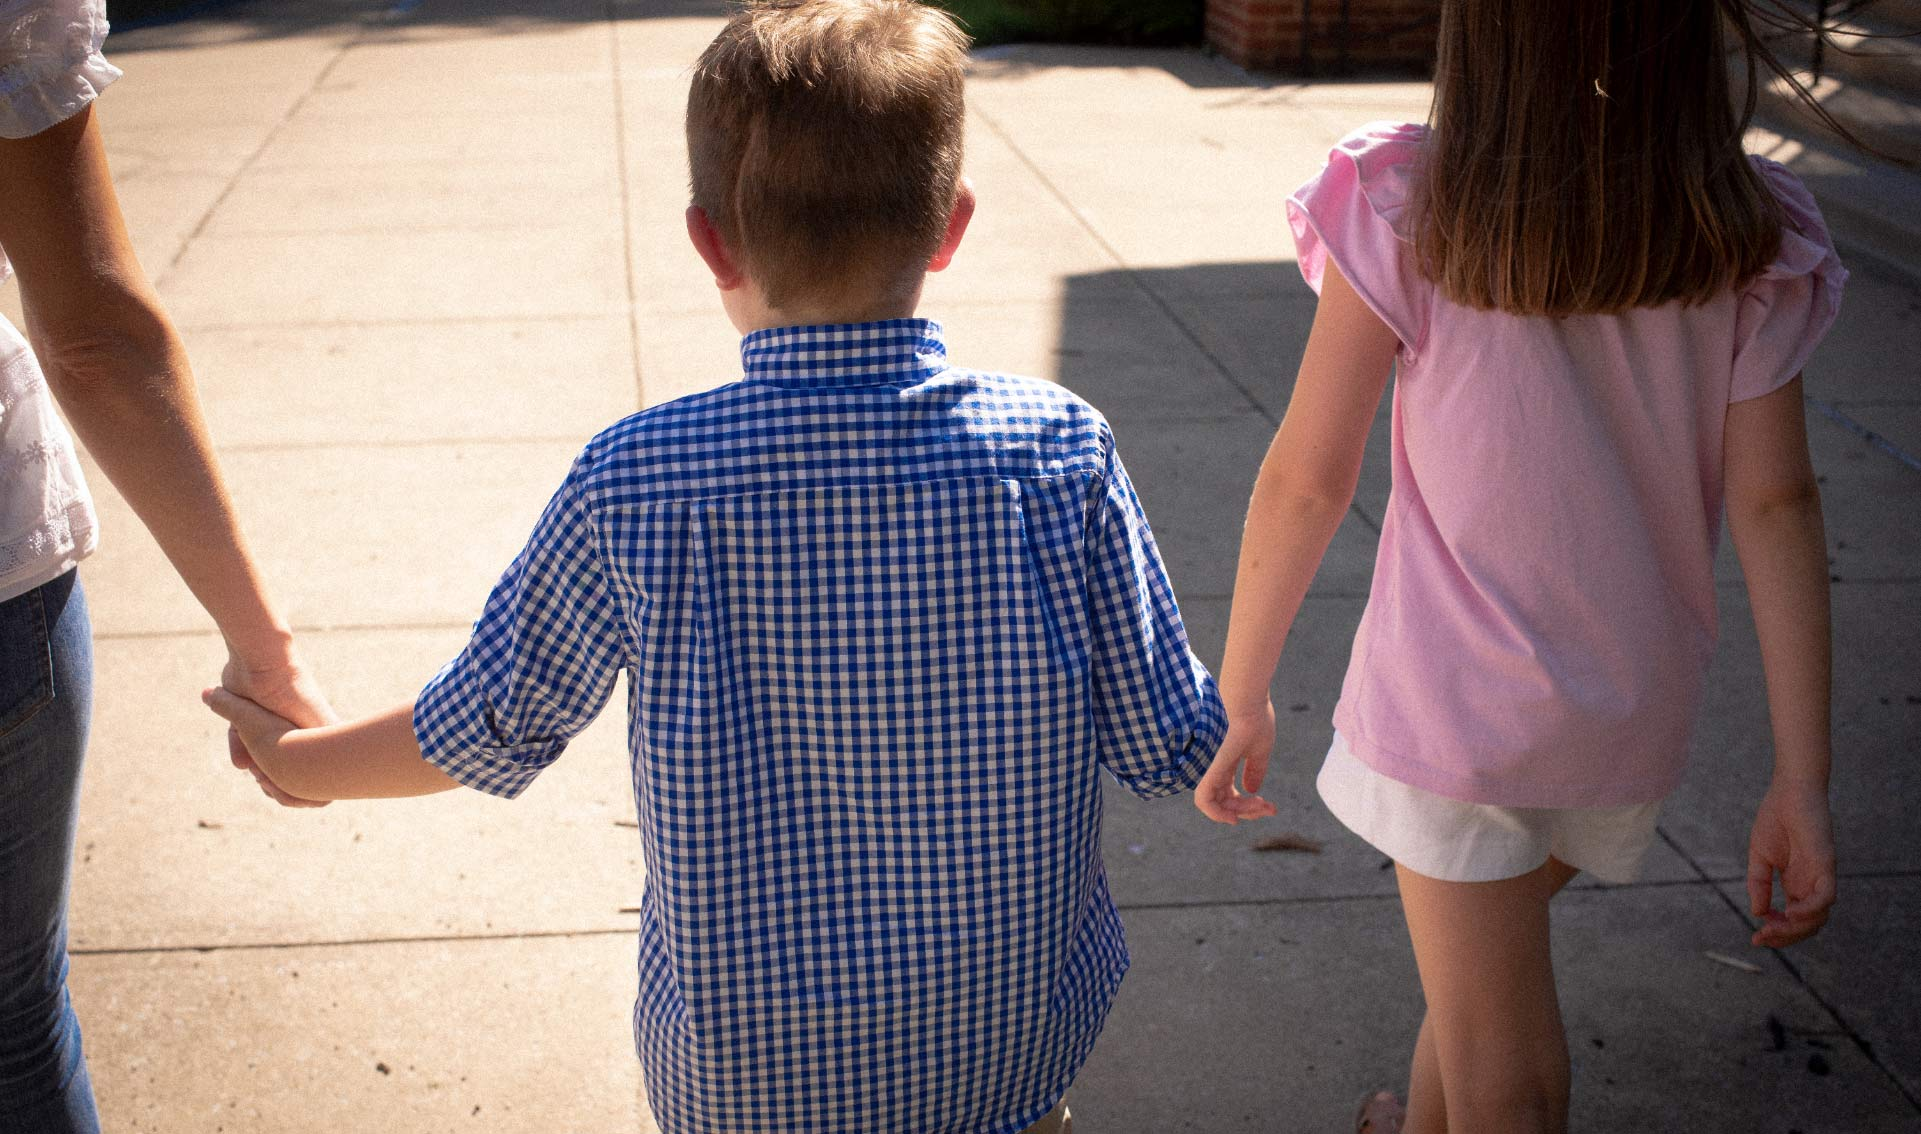 A photo from behind Elliott as he walks in between his mother and sister holding both of their hands.